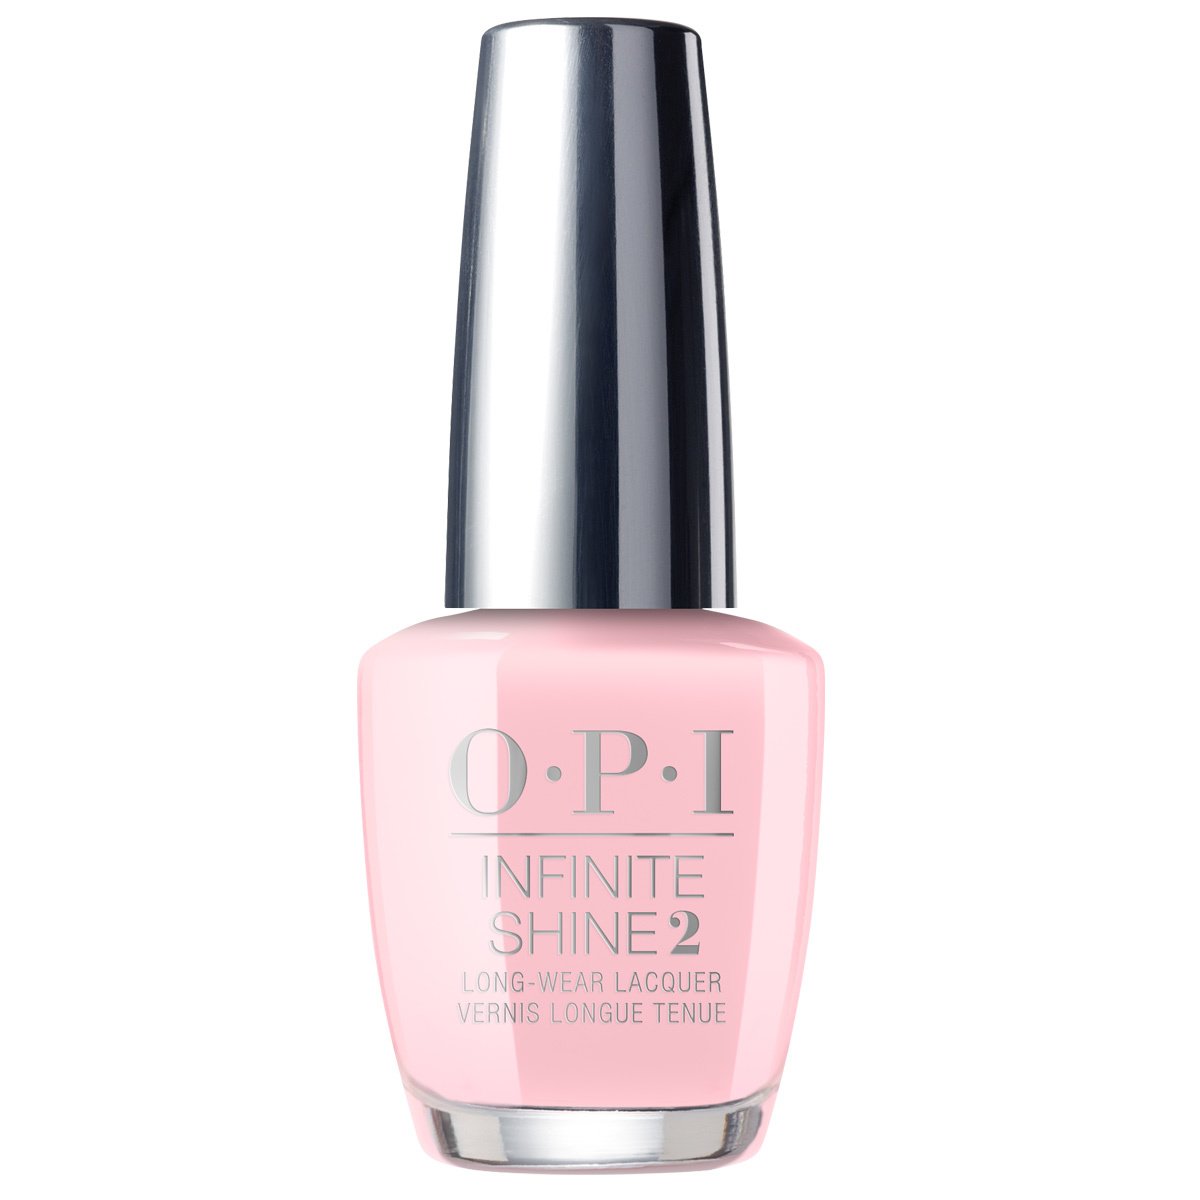 Laca de uñas Baby Take a Vow Infinite Shine 2, OPI (20 euros).